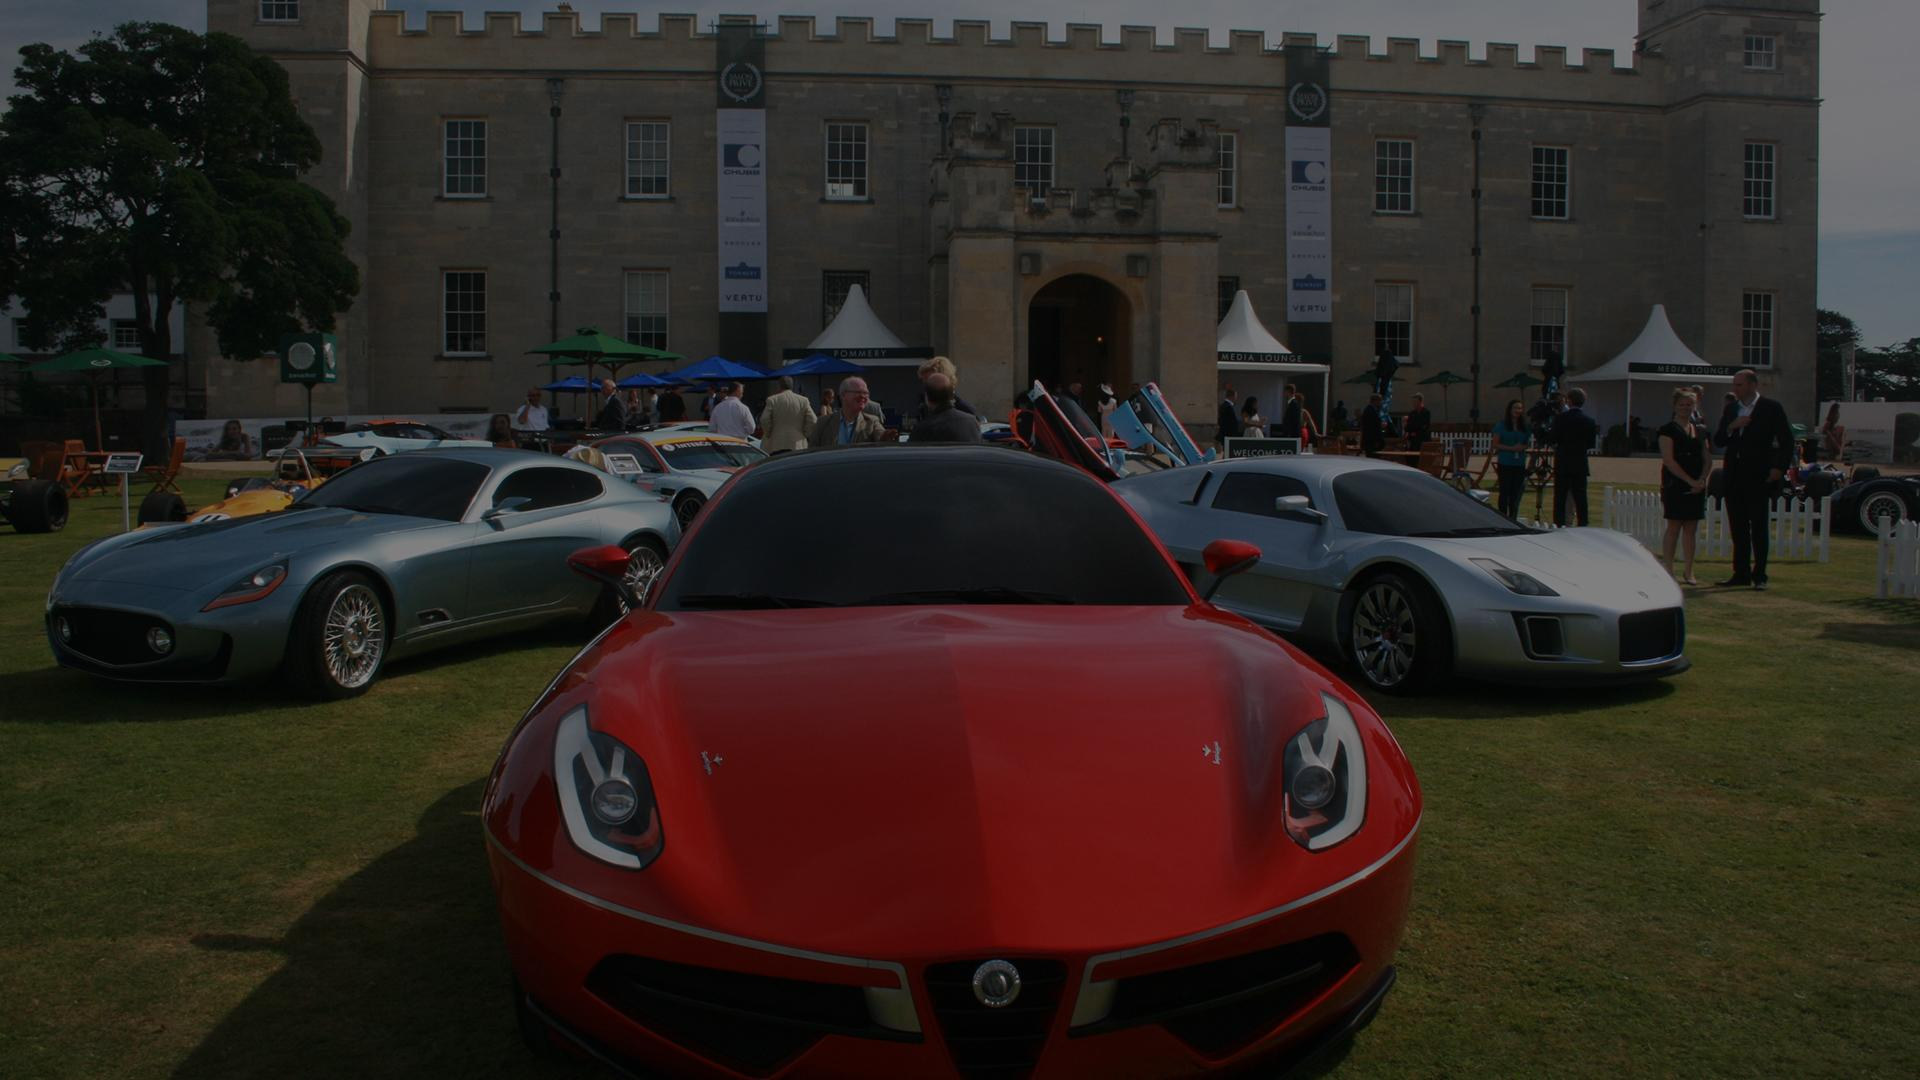 Salon Prive Slider Image | EventXperts UK